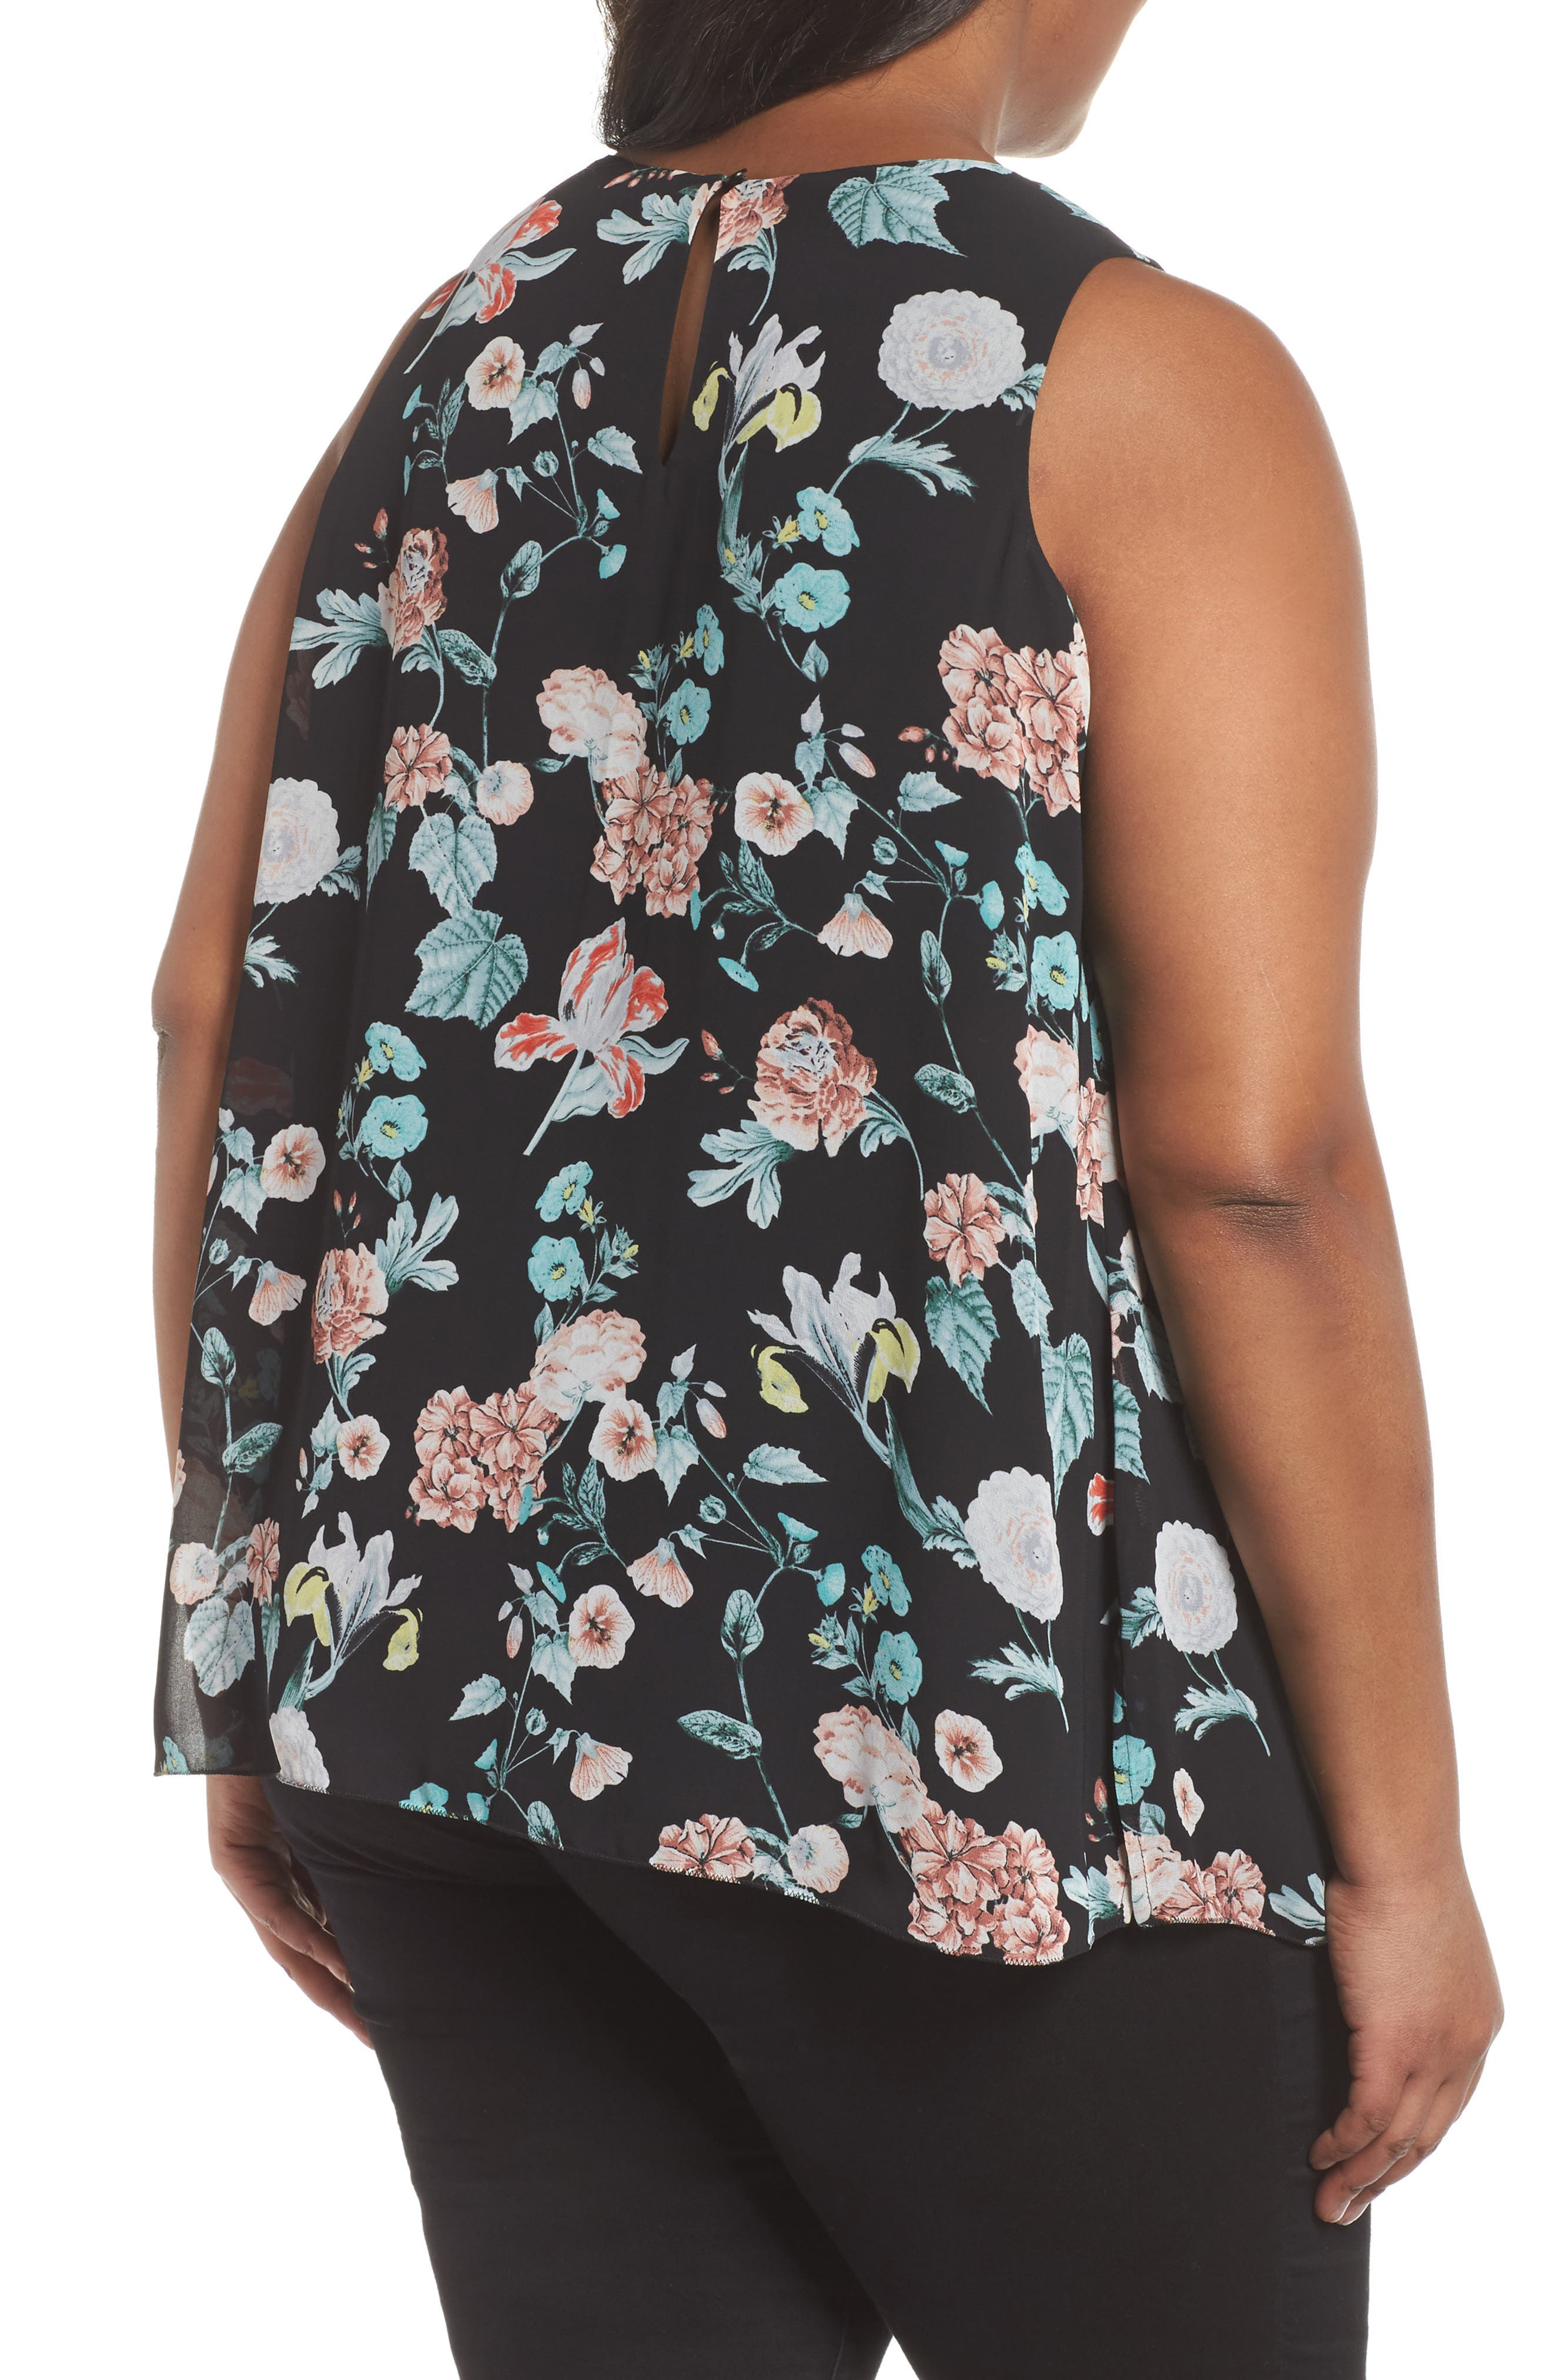 VINCE CAMUTO,                             Sleeveless Floral Gardens Top,                             Alternate thumbnail 2, color,                             010